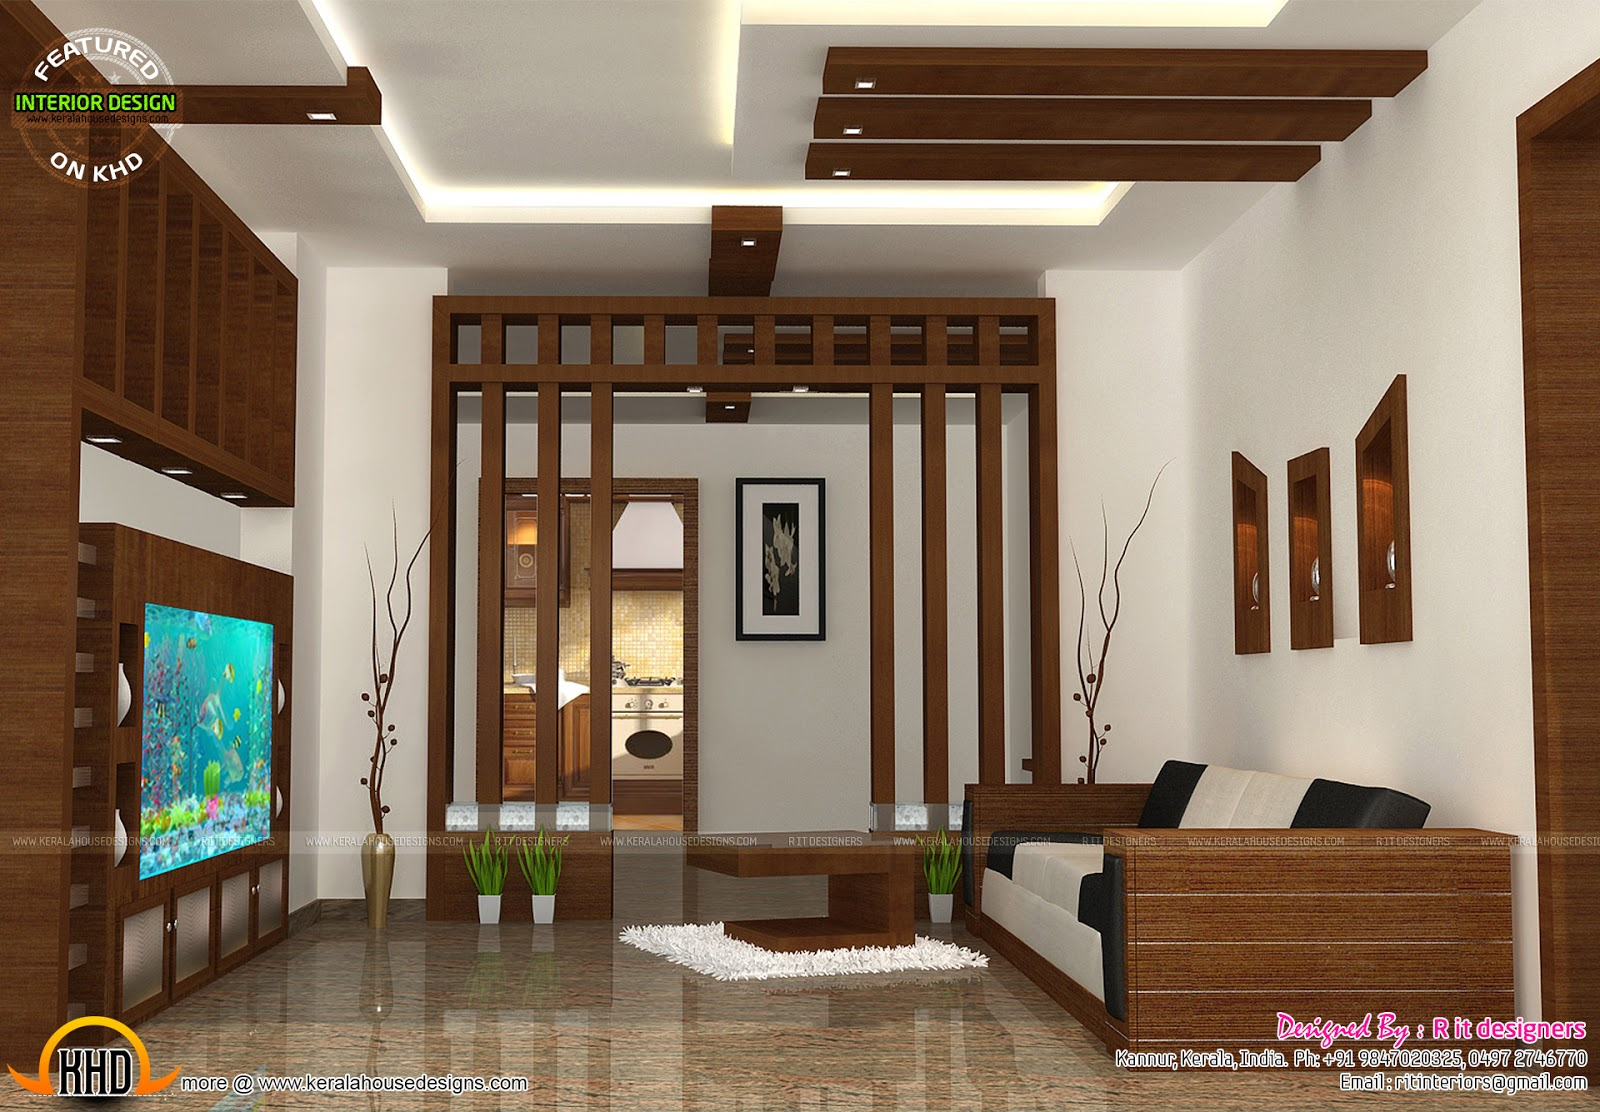 Wooden finish interiors kerala home design and floor plans for Kerala homes interior designs